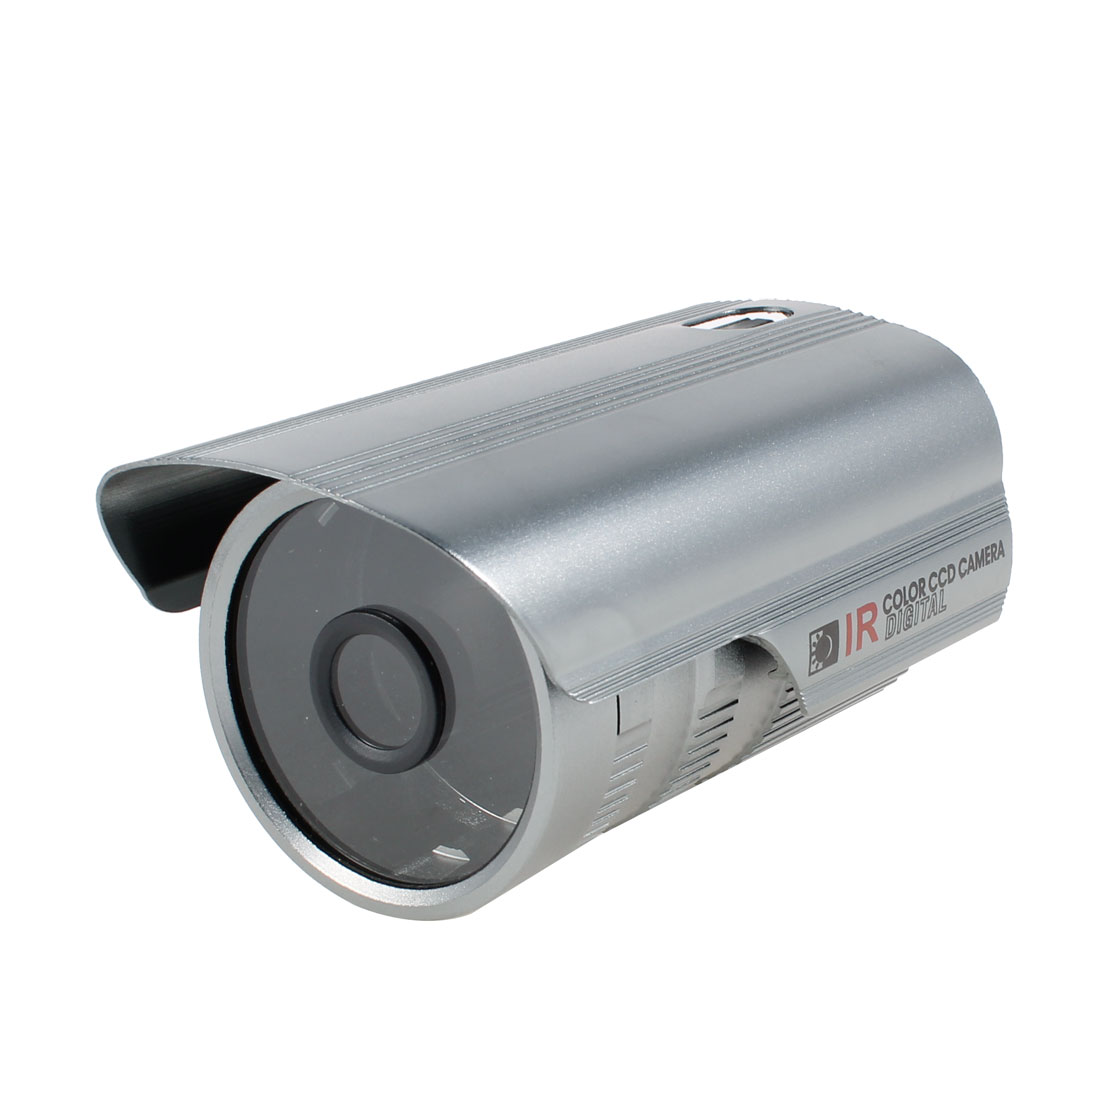 Aluminium Alloy Protective IP IR CCTV Camera Housing Case Shell 4.5""